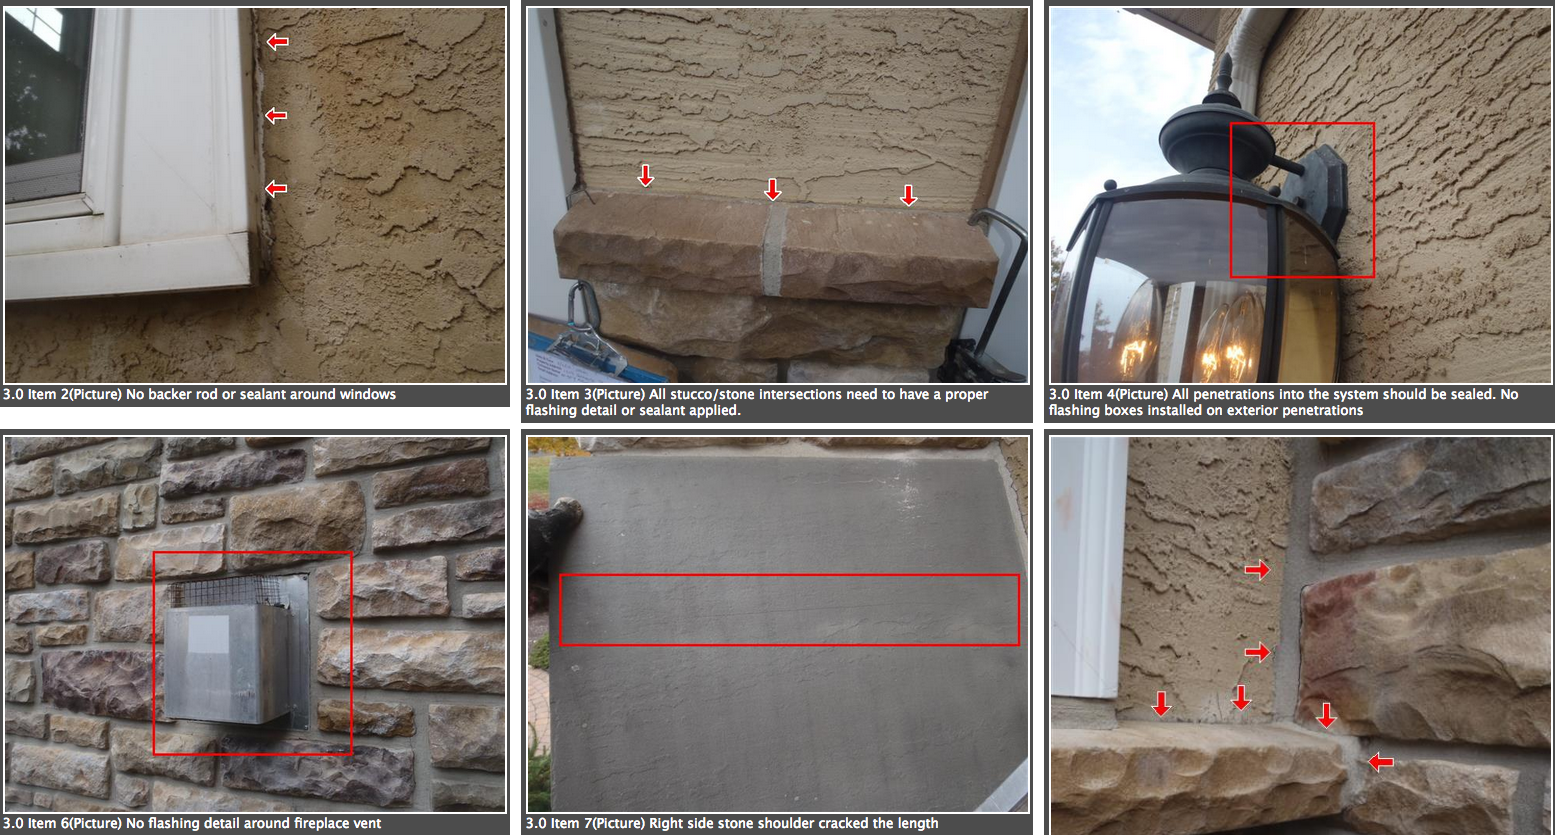 Eight Reasons Why Stucco Stone Installations Fail Quality Stucco Siding Plastering Water Mold Damage Repair Stucco Remediation Dryvit And Stone Contractor By Rene Munoz Plastering Llc In Pa